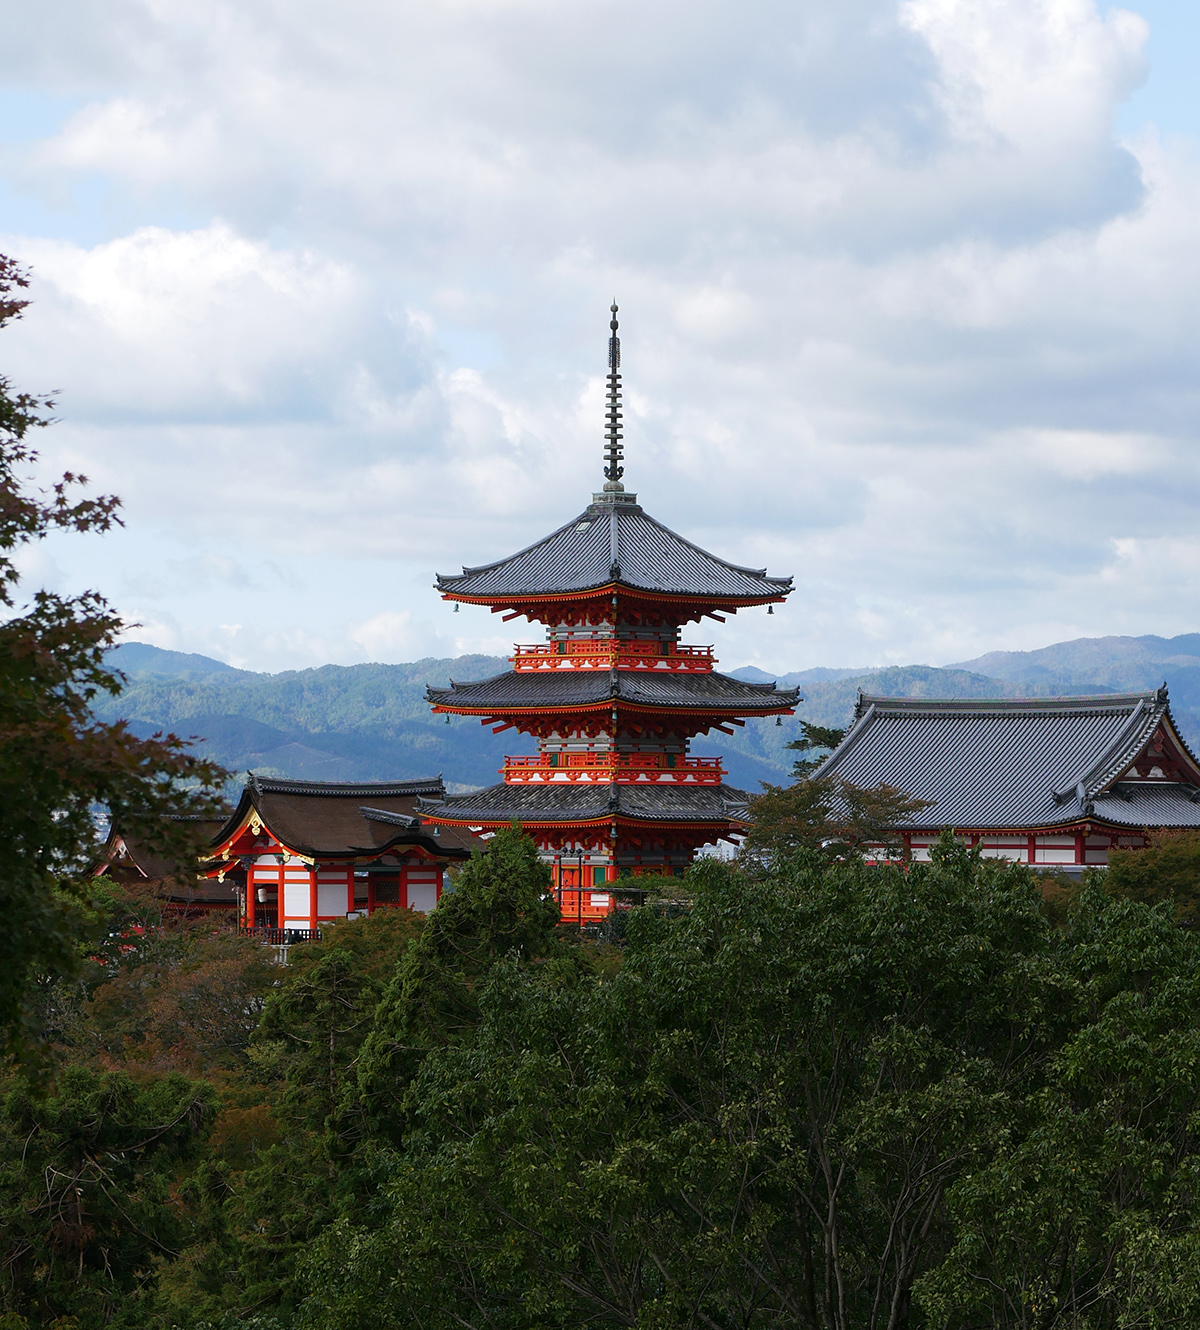 an orange temple in the distance, behind tree with the moutains in the distance